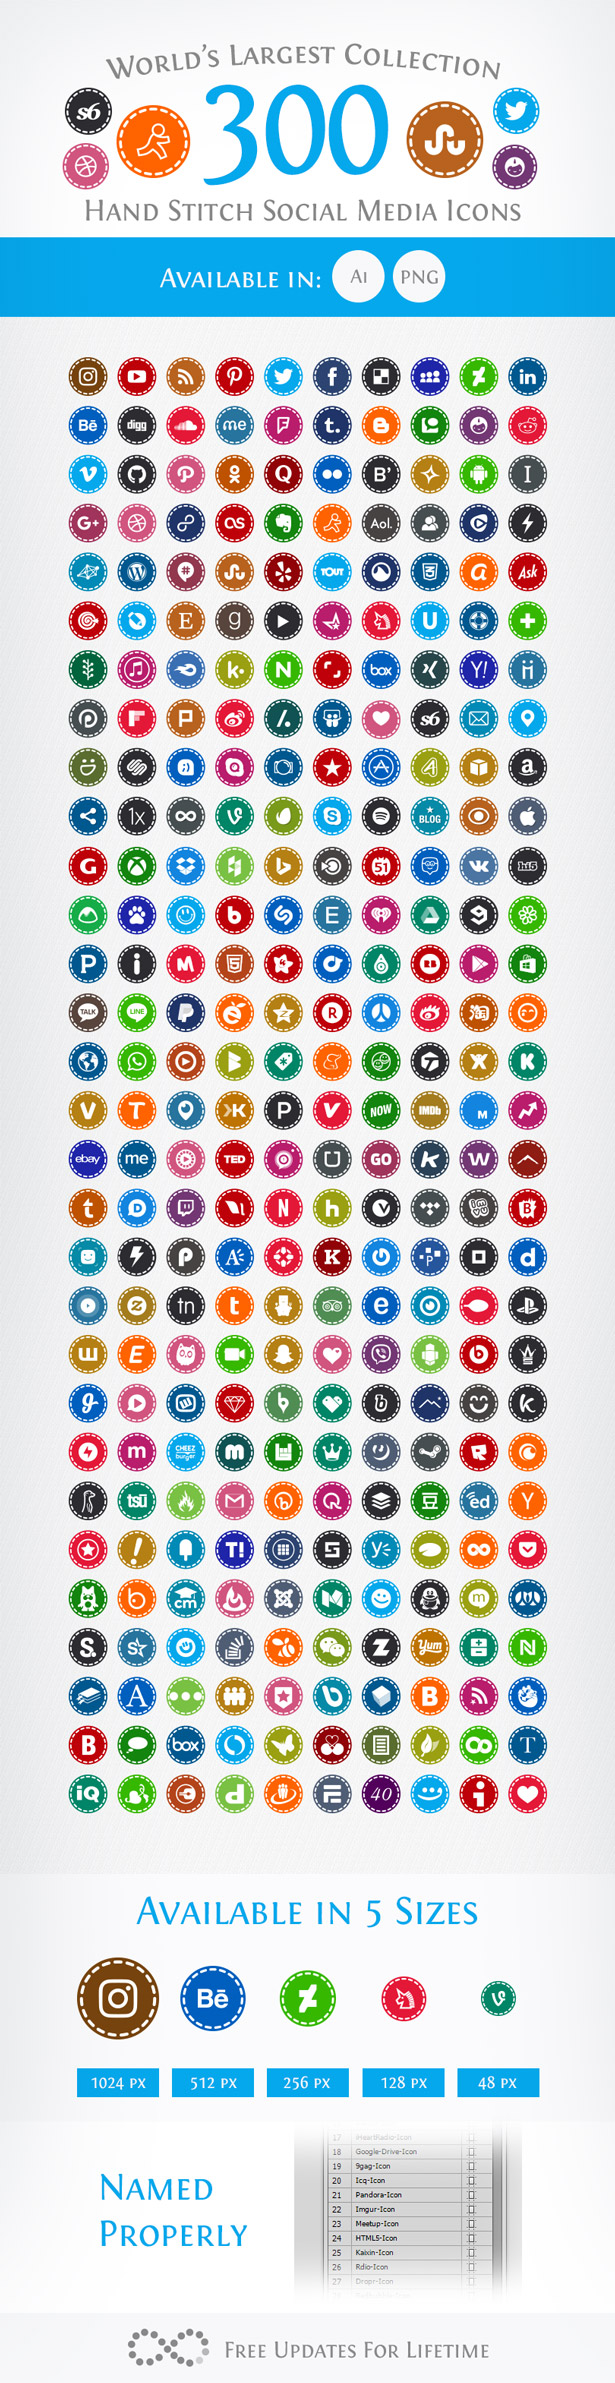 300-Hand-Stitch-Social-Media-Icons-2014-Vector-Ai-+-PNGs-Free-&-Premium